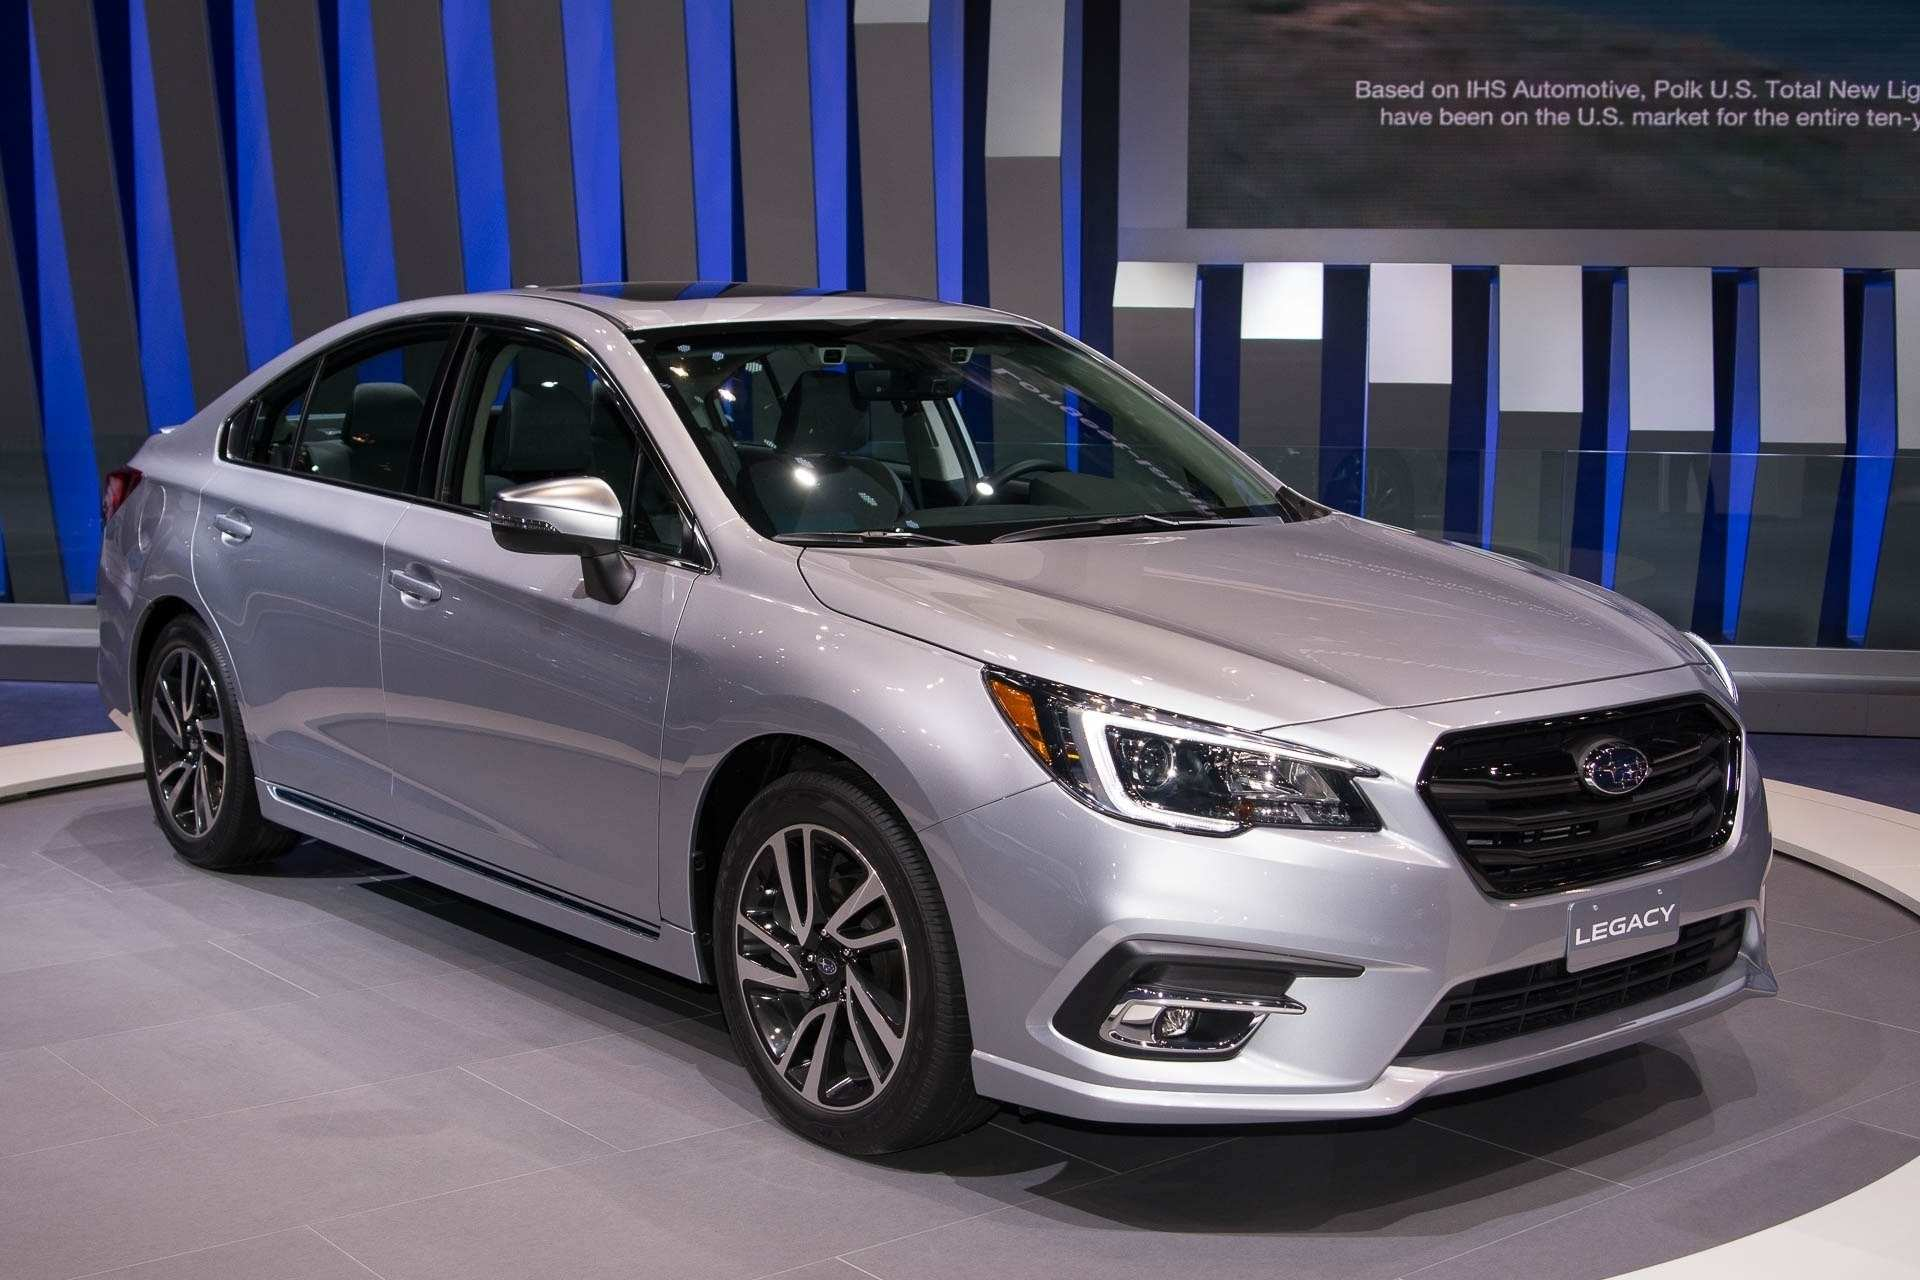 74 Best Review 2019 Subaru Legacy Review Research New with 2019 Subaru Legacy Review